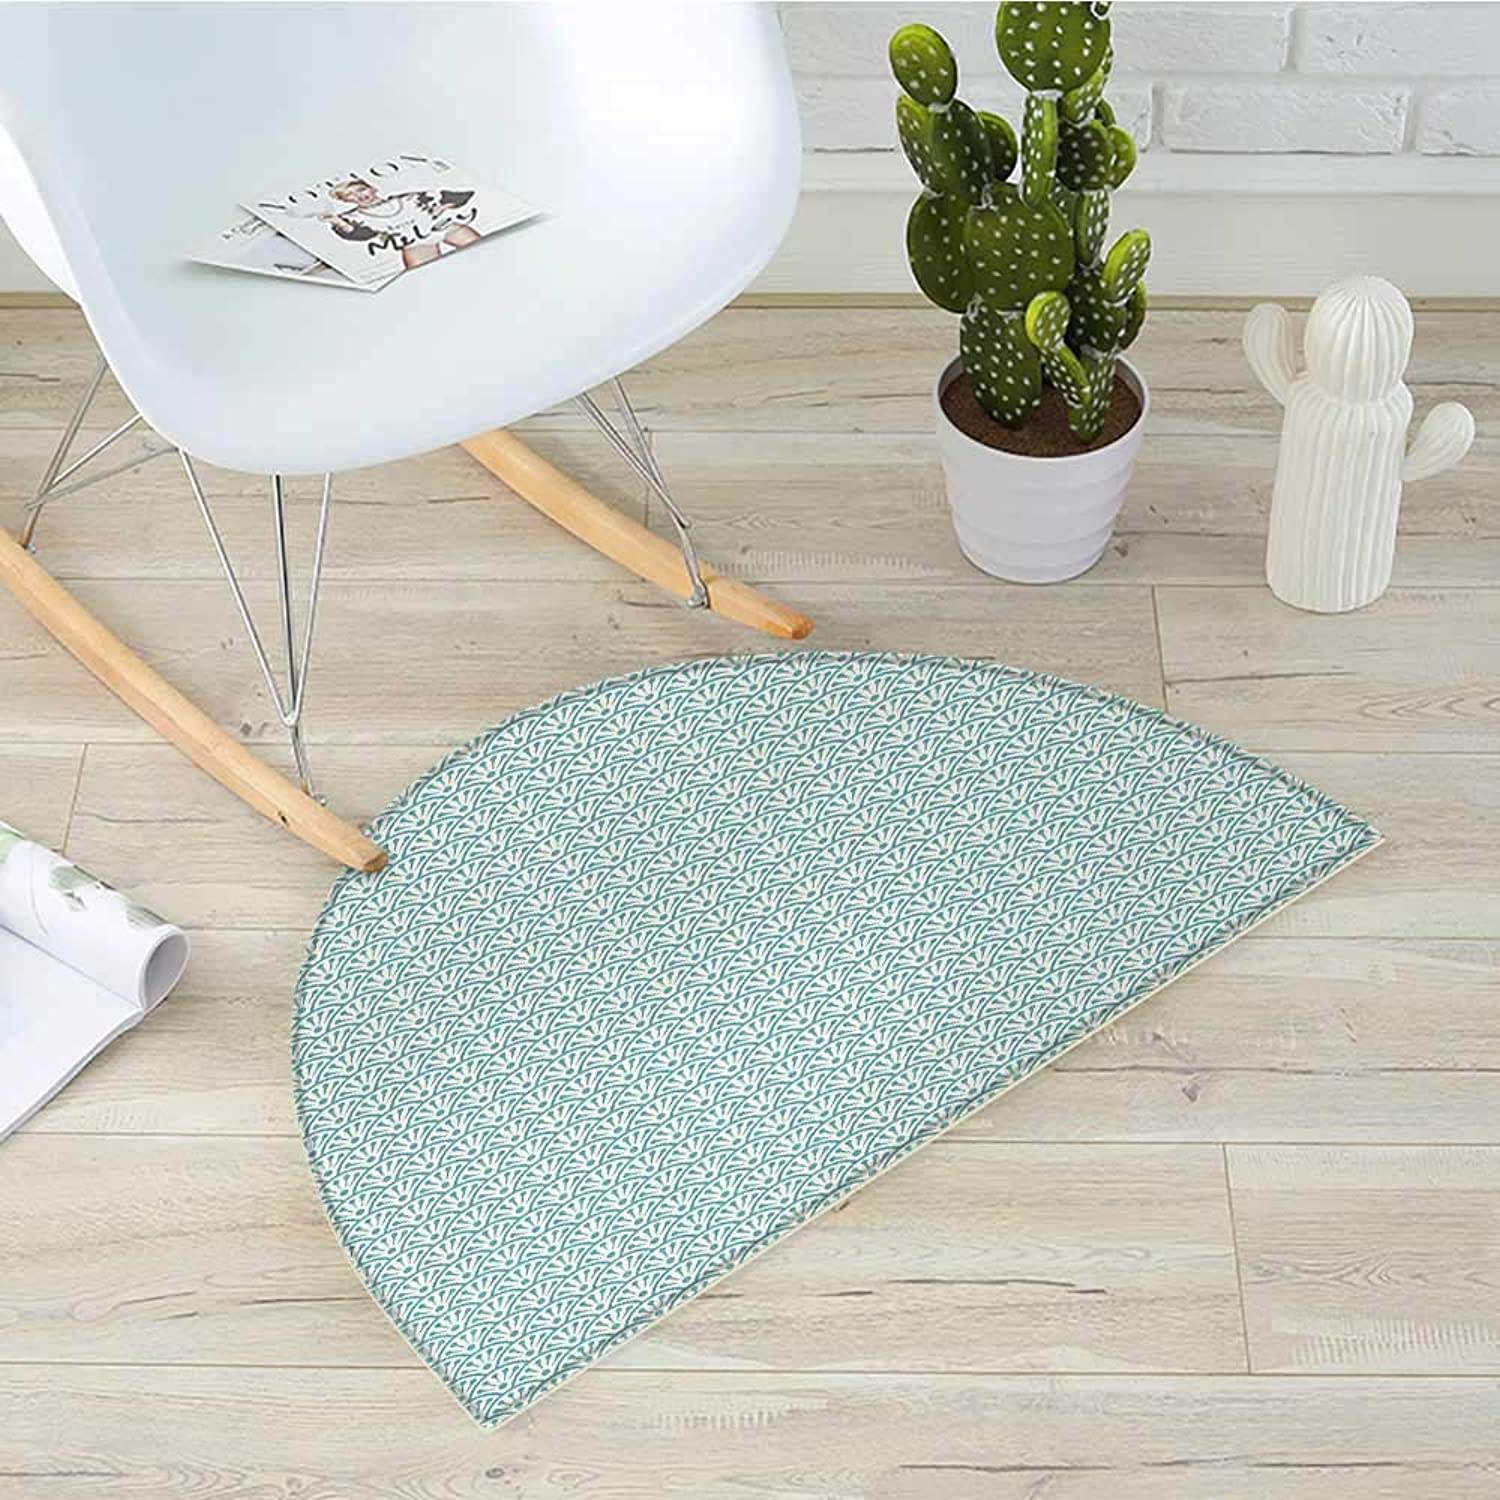 Eastern Semicircle Doormat Traditional Artistic Design Conceptual Artwork Sea Inspired Waves Retro Floral Halfmoon doormats H 31.5  xD 47.2  Sky bluee White